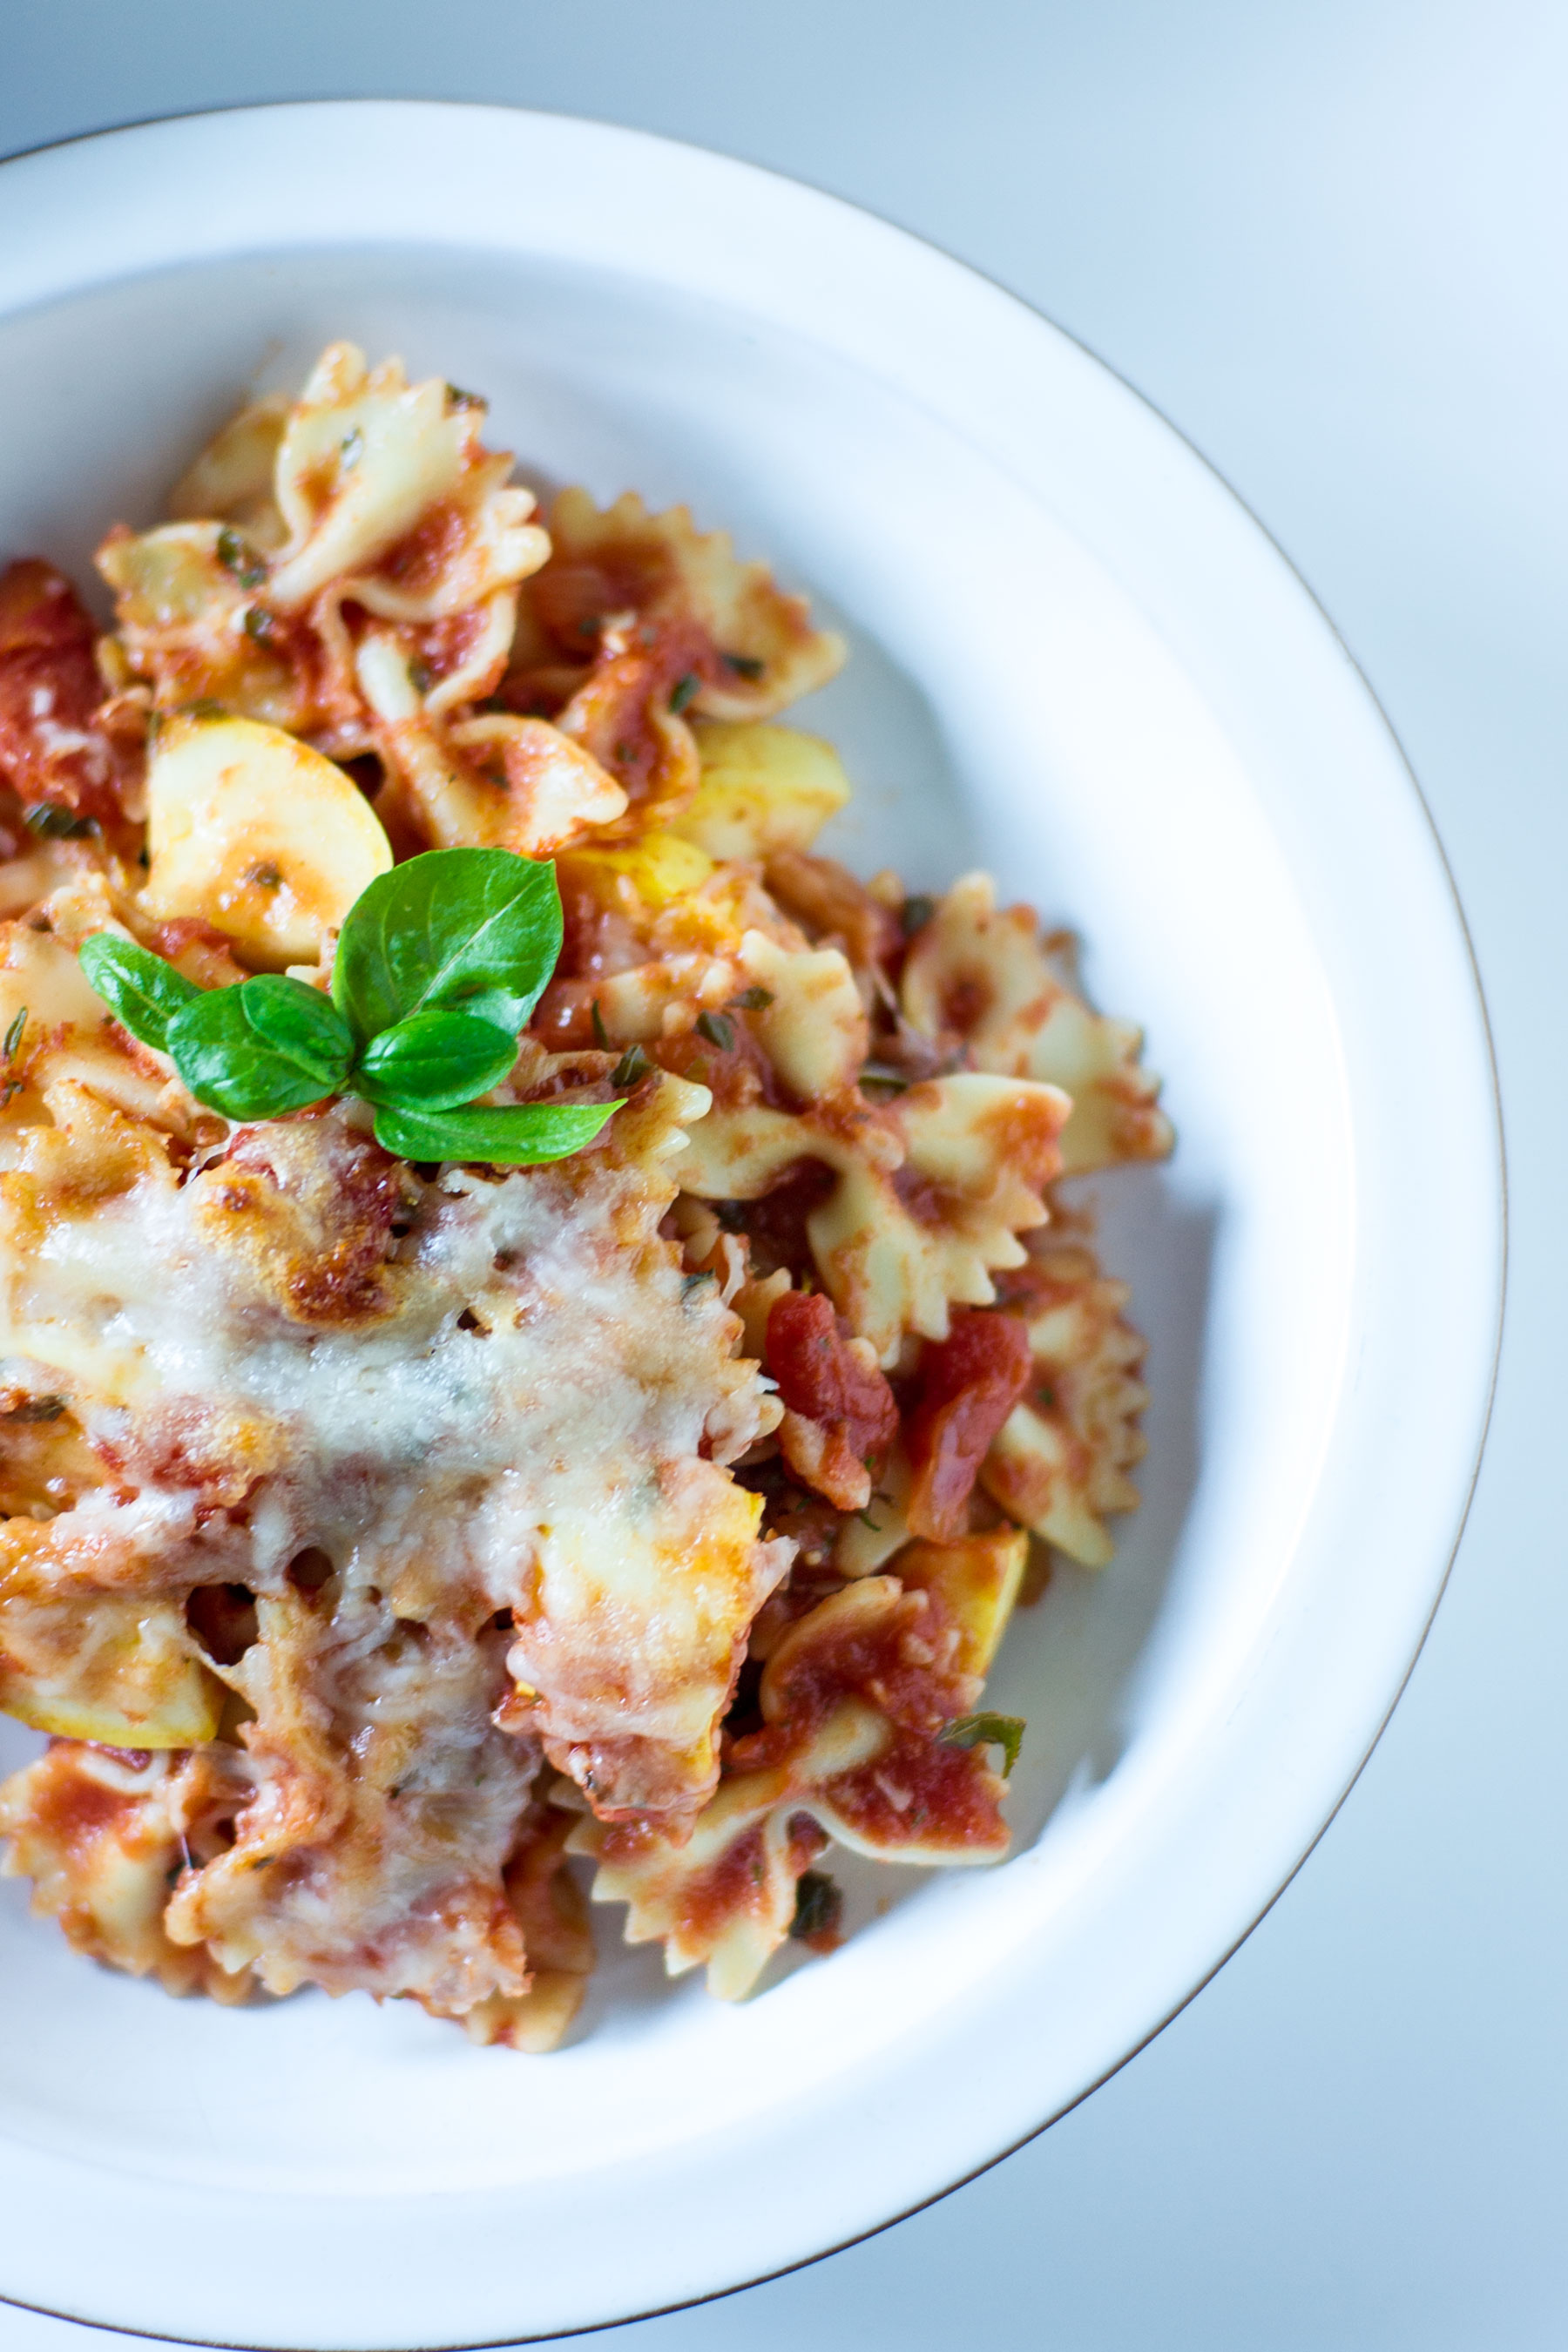 Baked Farfalle with Summer Squash by Sam Henderson of Today's Nest